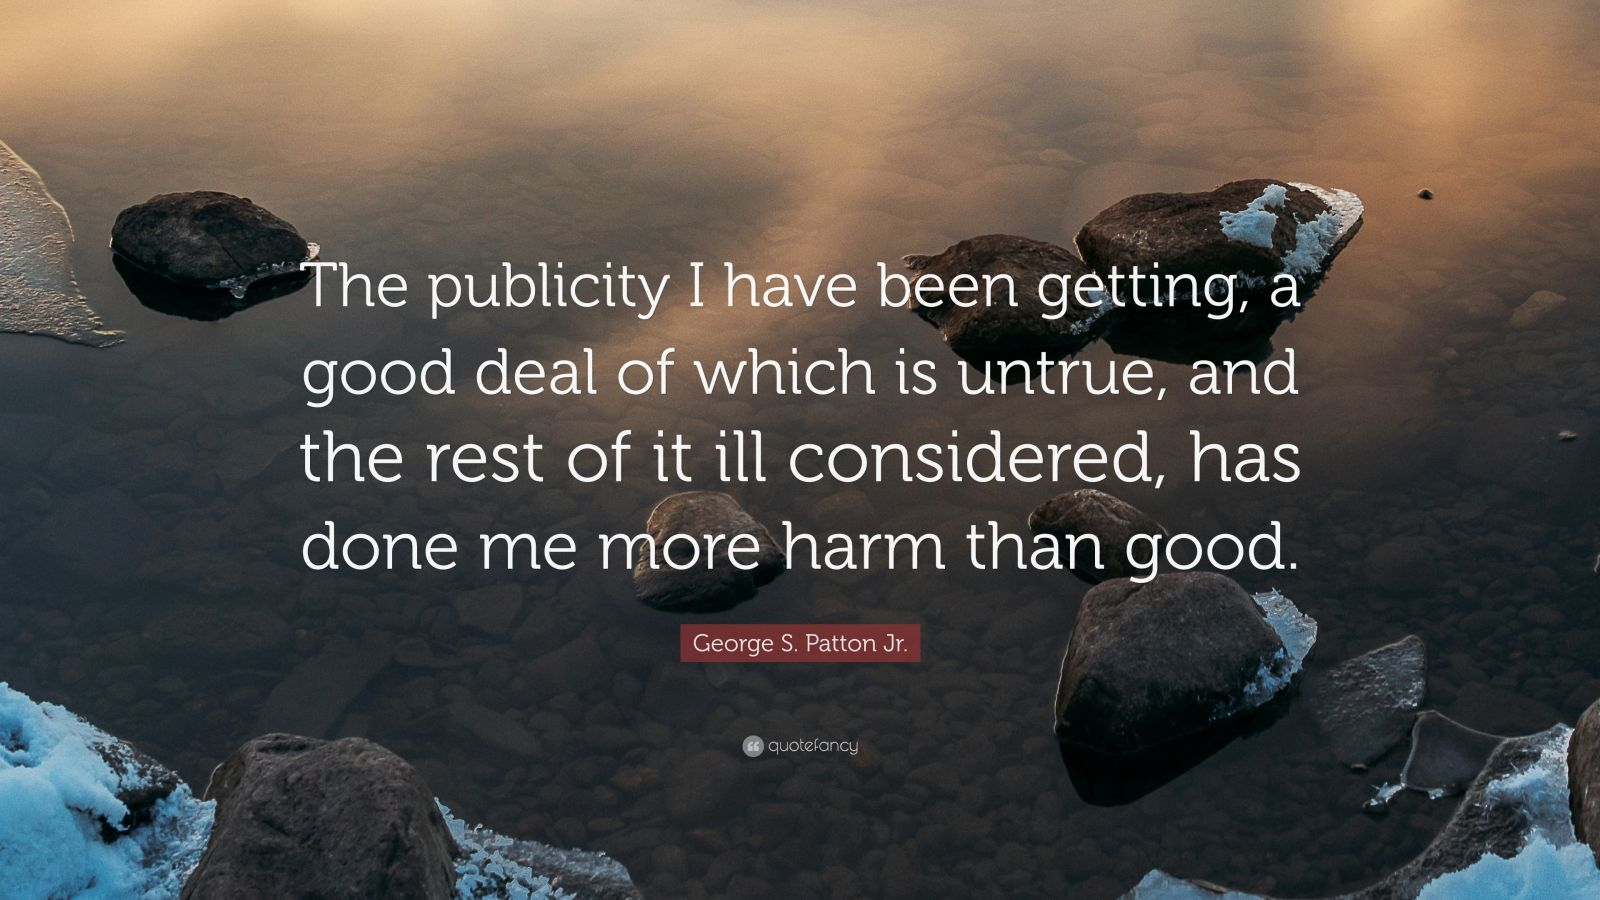 """George S. Patton Jr. Quote: """"The publicity I have been getting, a good deal of which is untrue, and the rest of it ill considered, has done me more harm than good."""""""